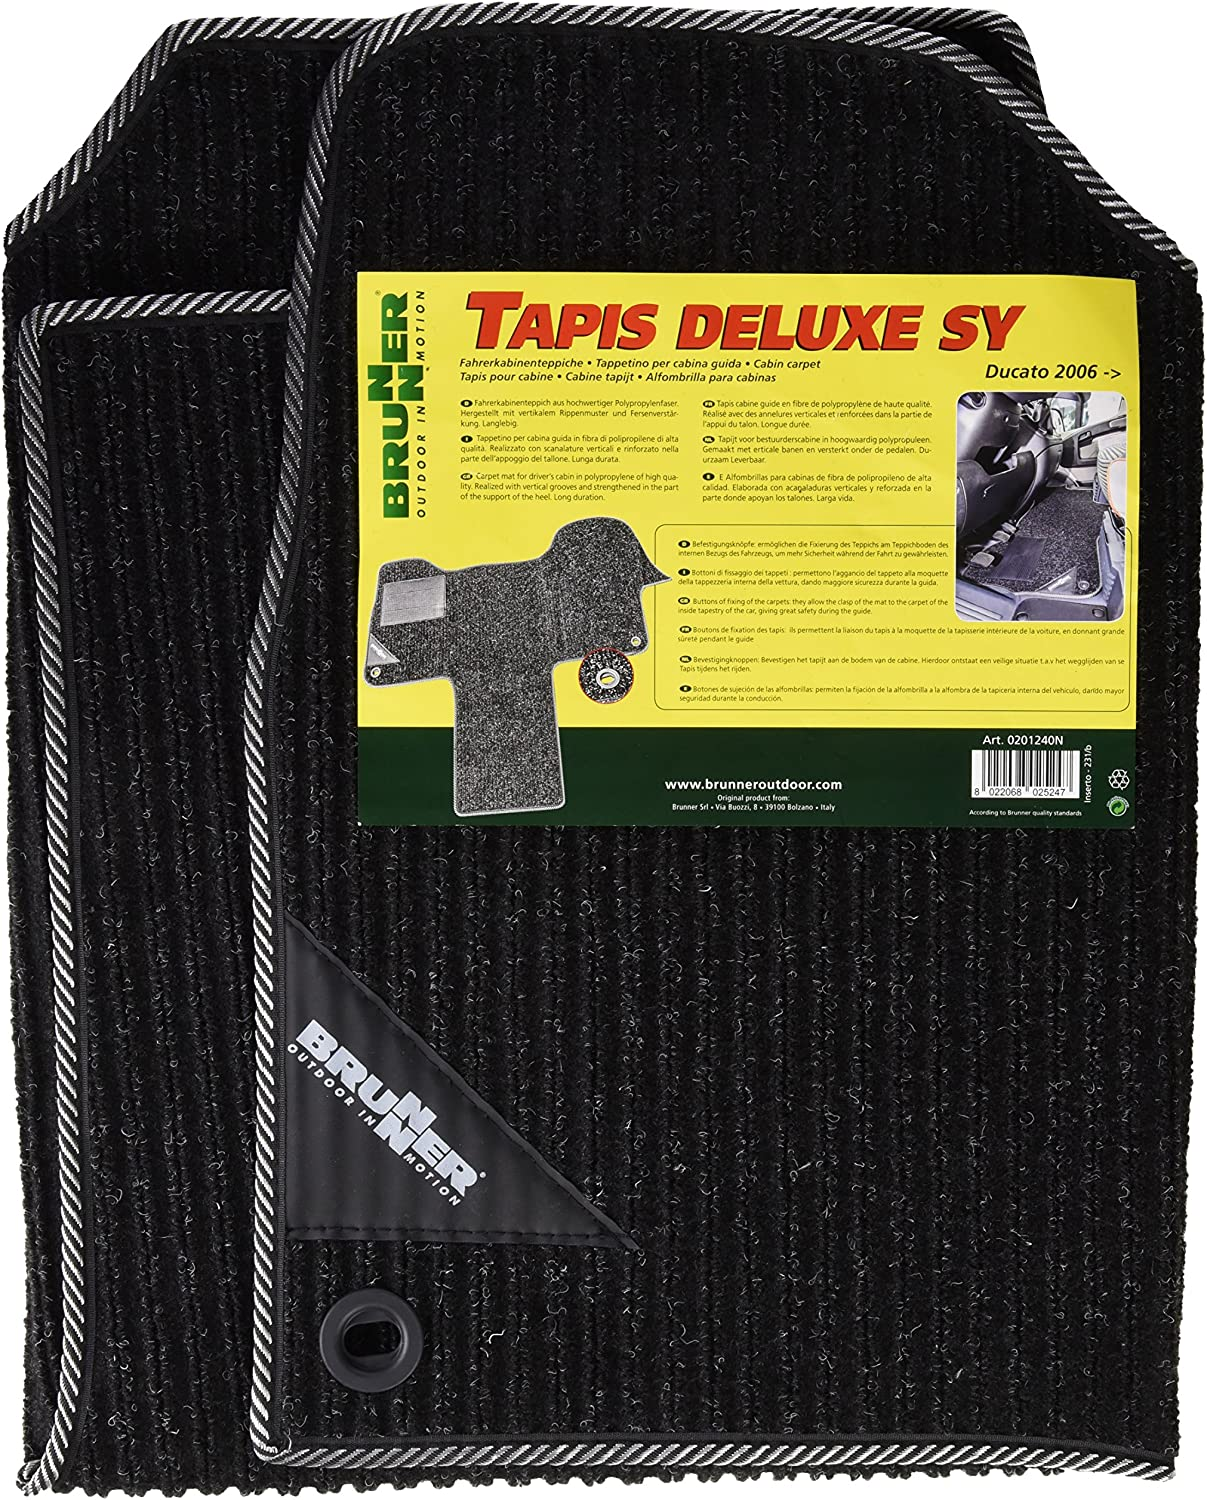 Brunner Tapis Deluxe Security Ducato 2006-2014